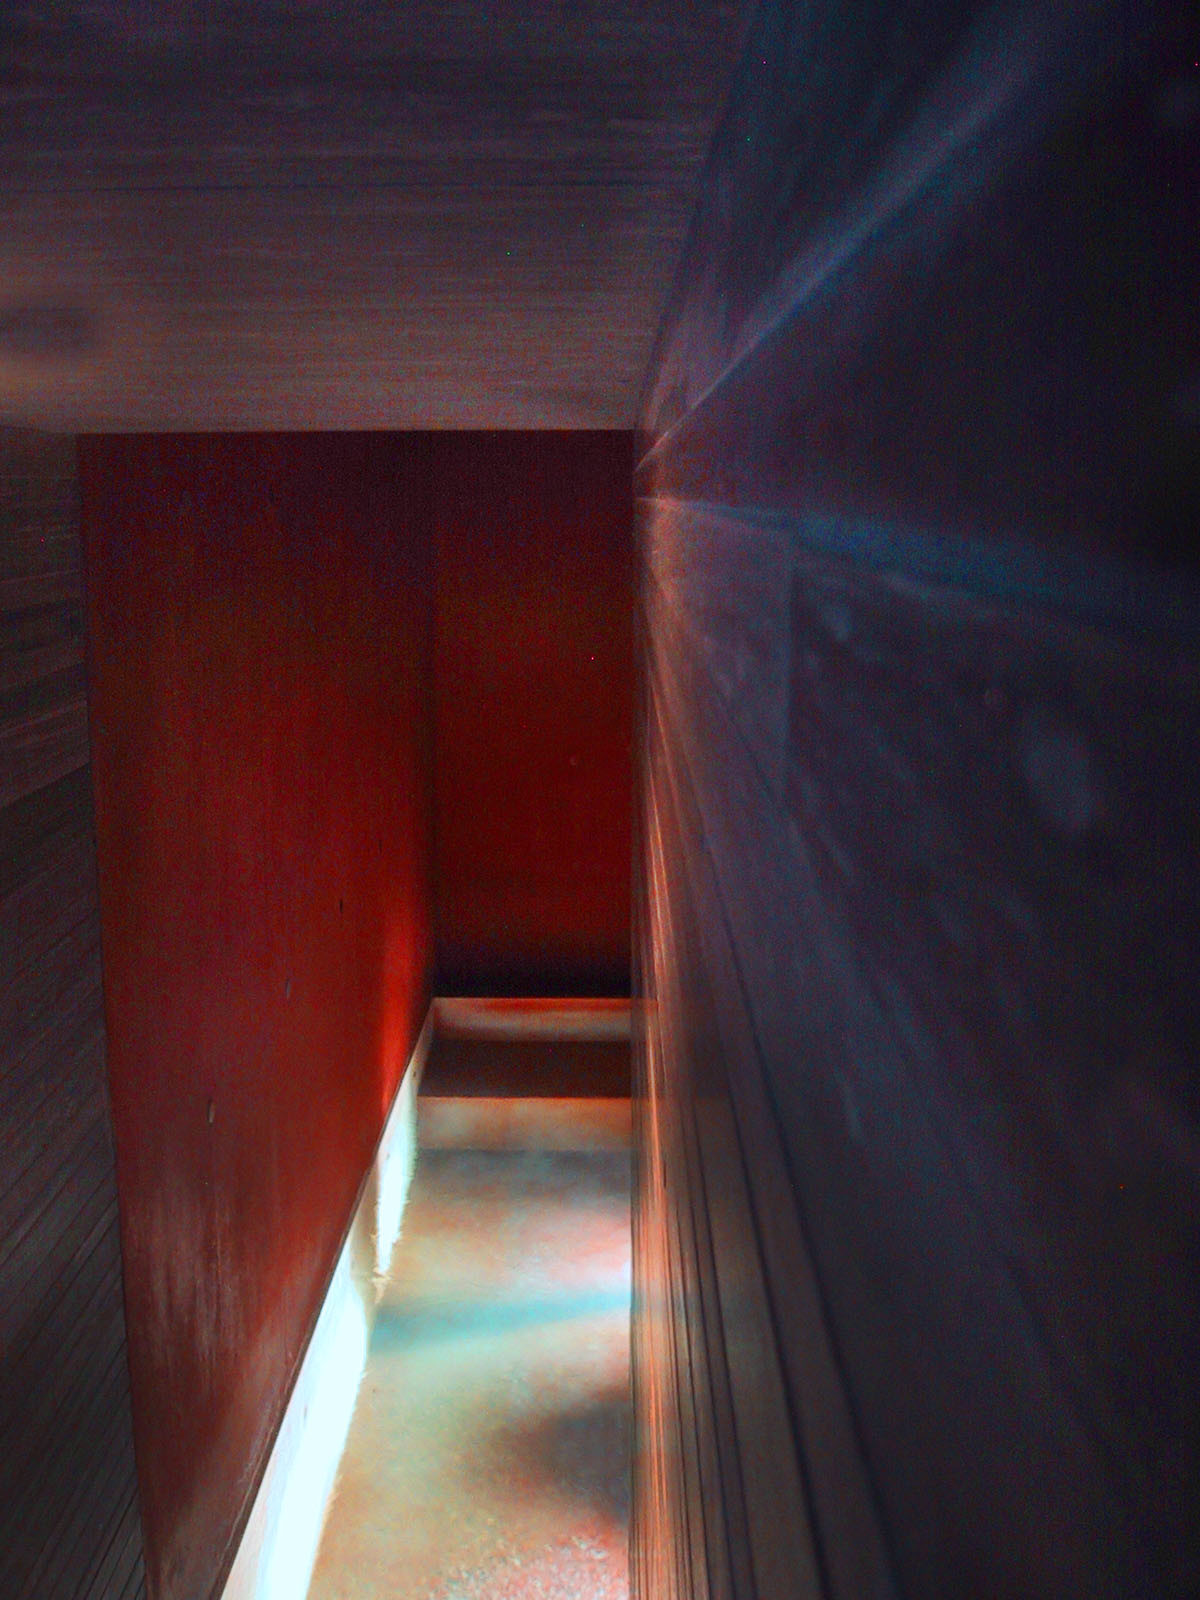 The Therme Vals / Peter ZumthorThe Therme Vals / Peter Zumthor